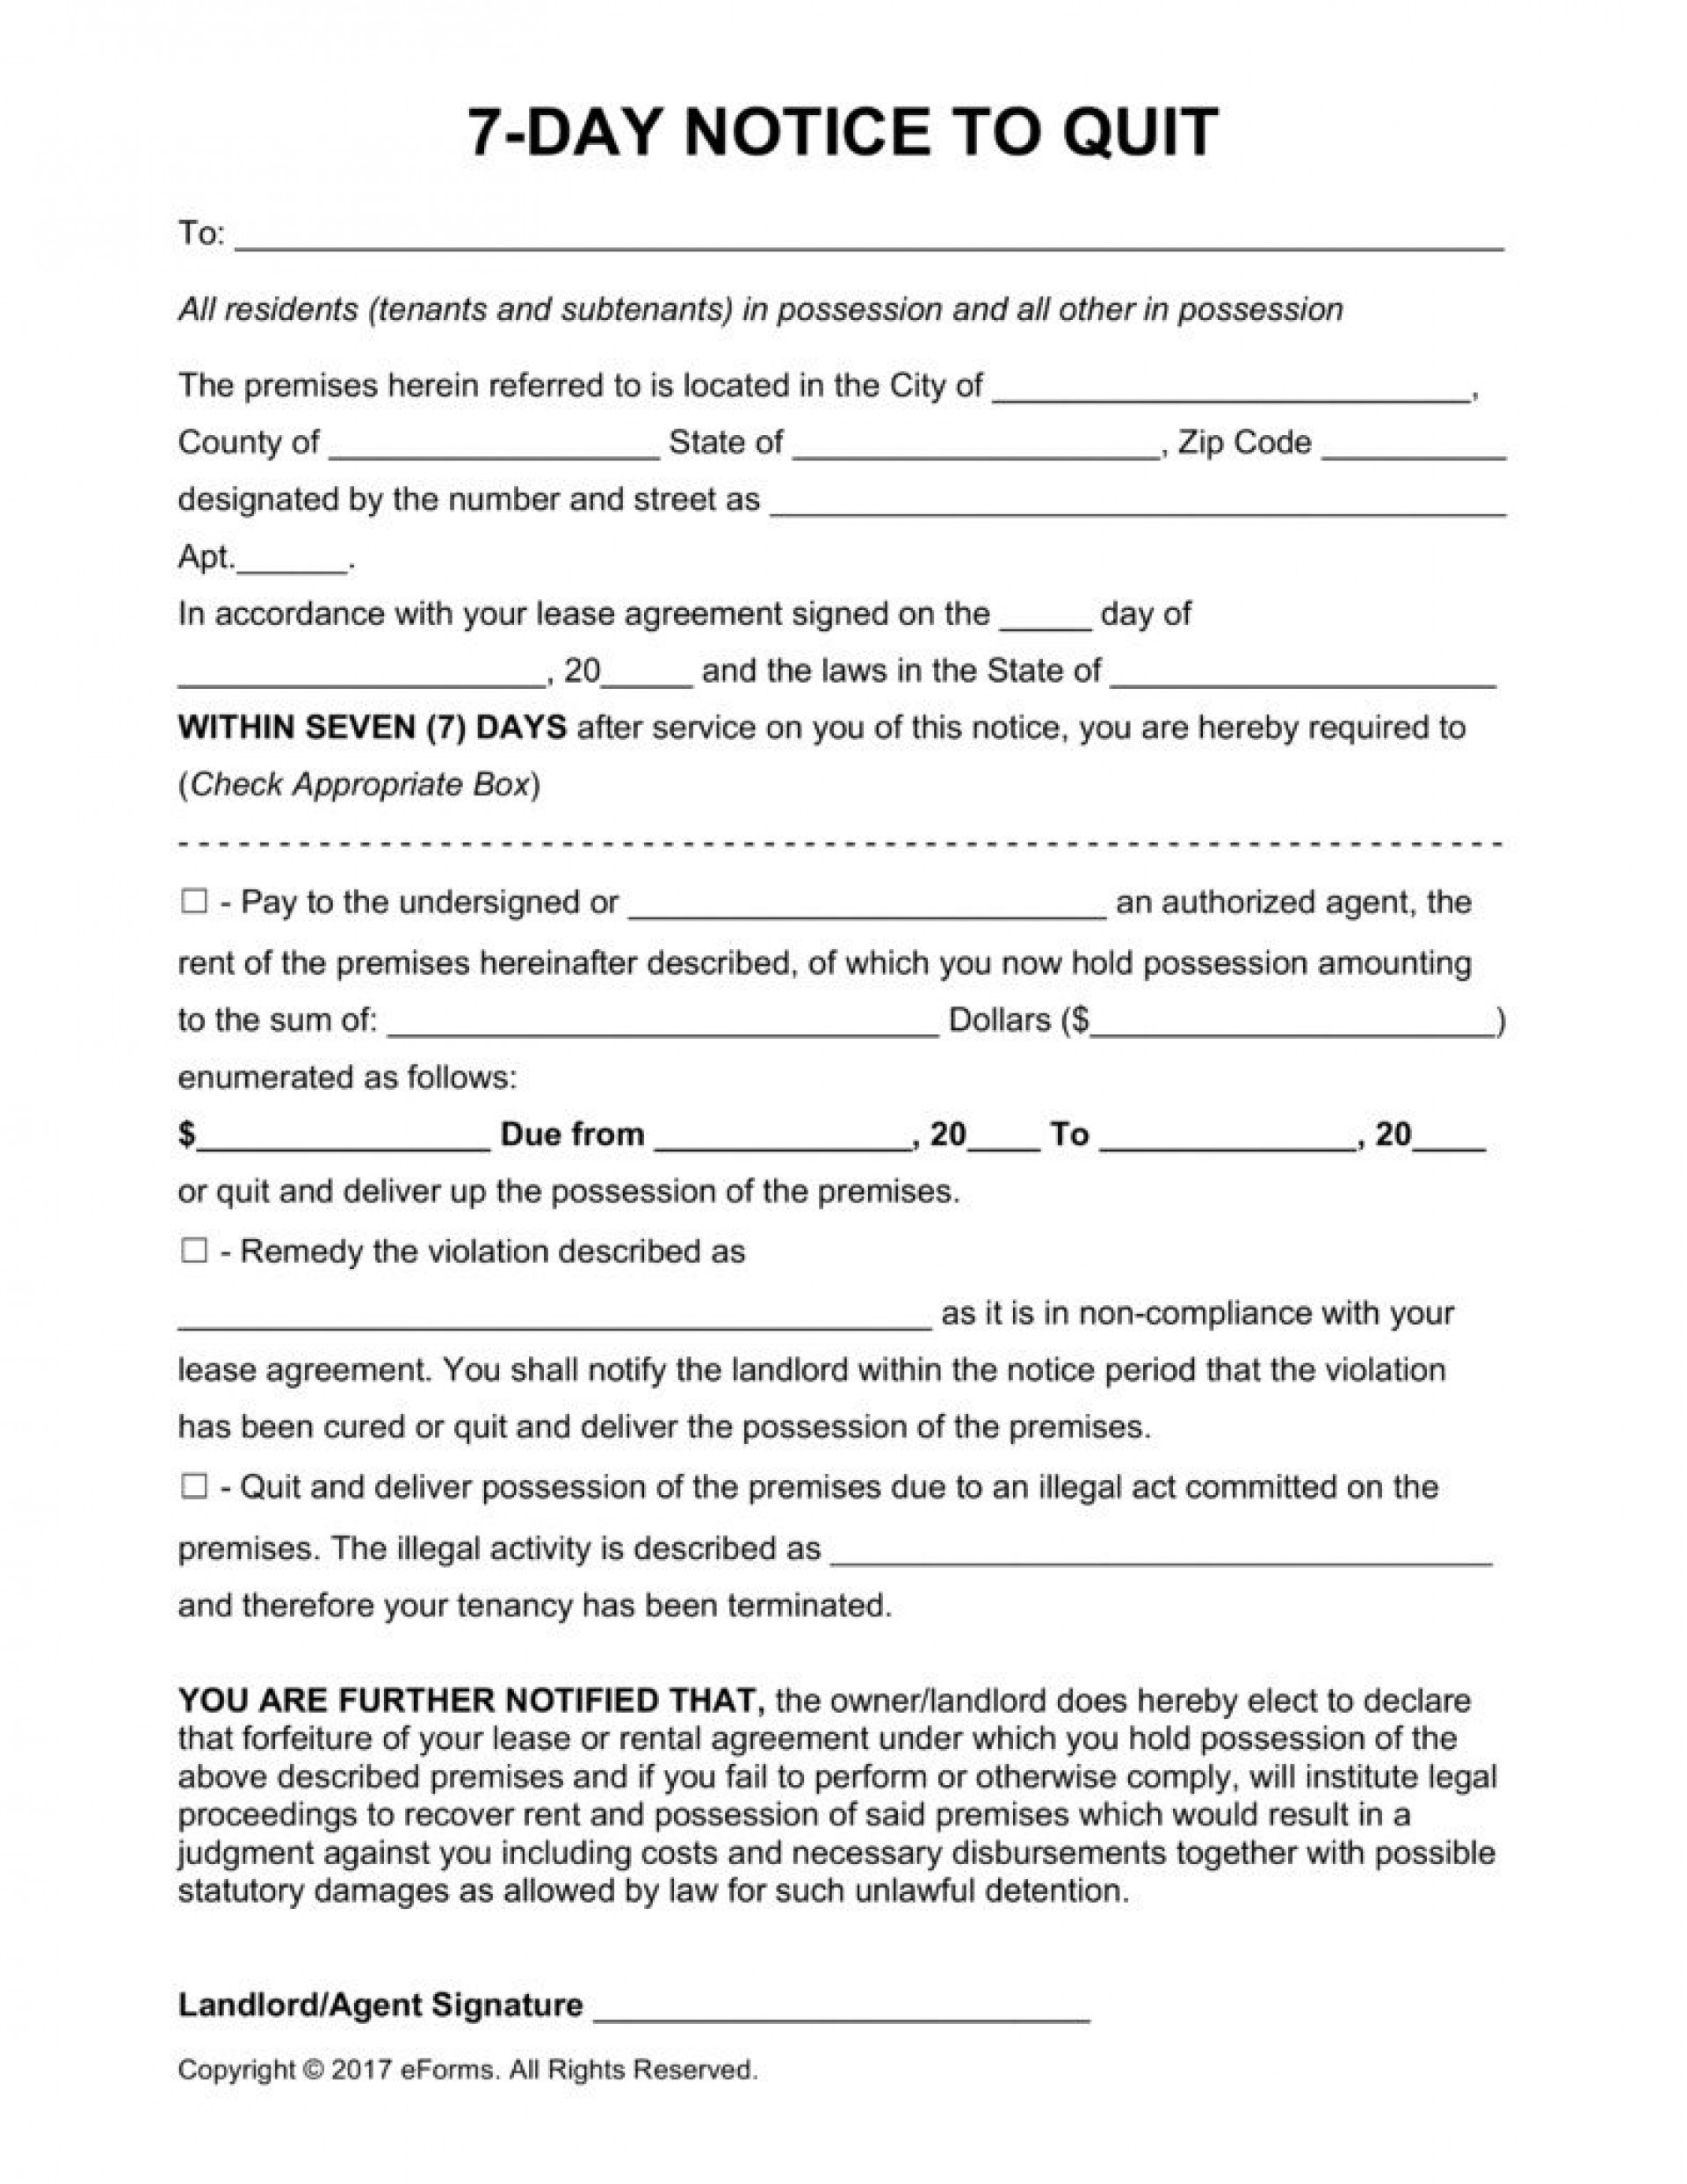 003 Surprising Eviction Notice Florida Template Image  15 Day Free Printable1920